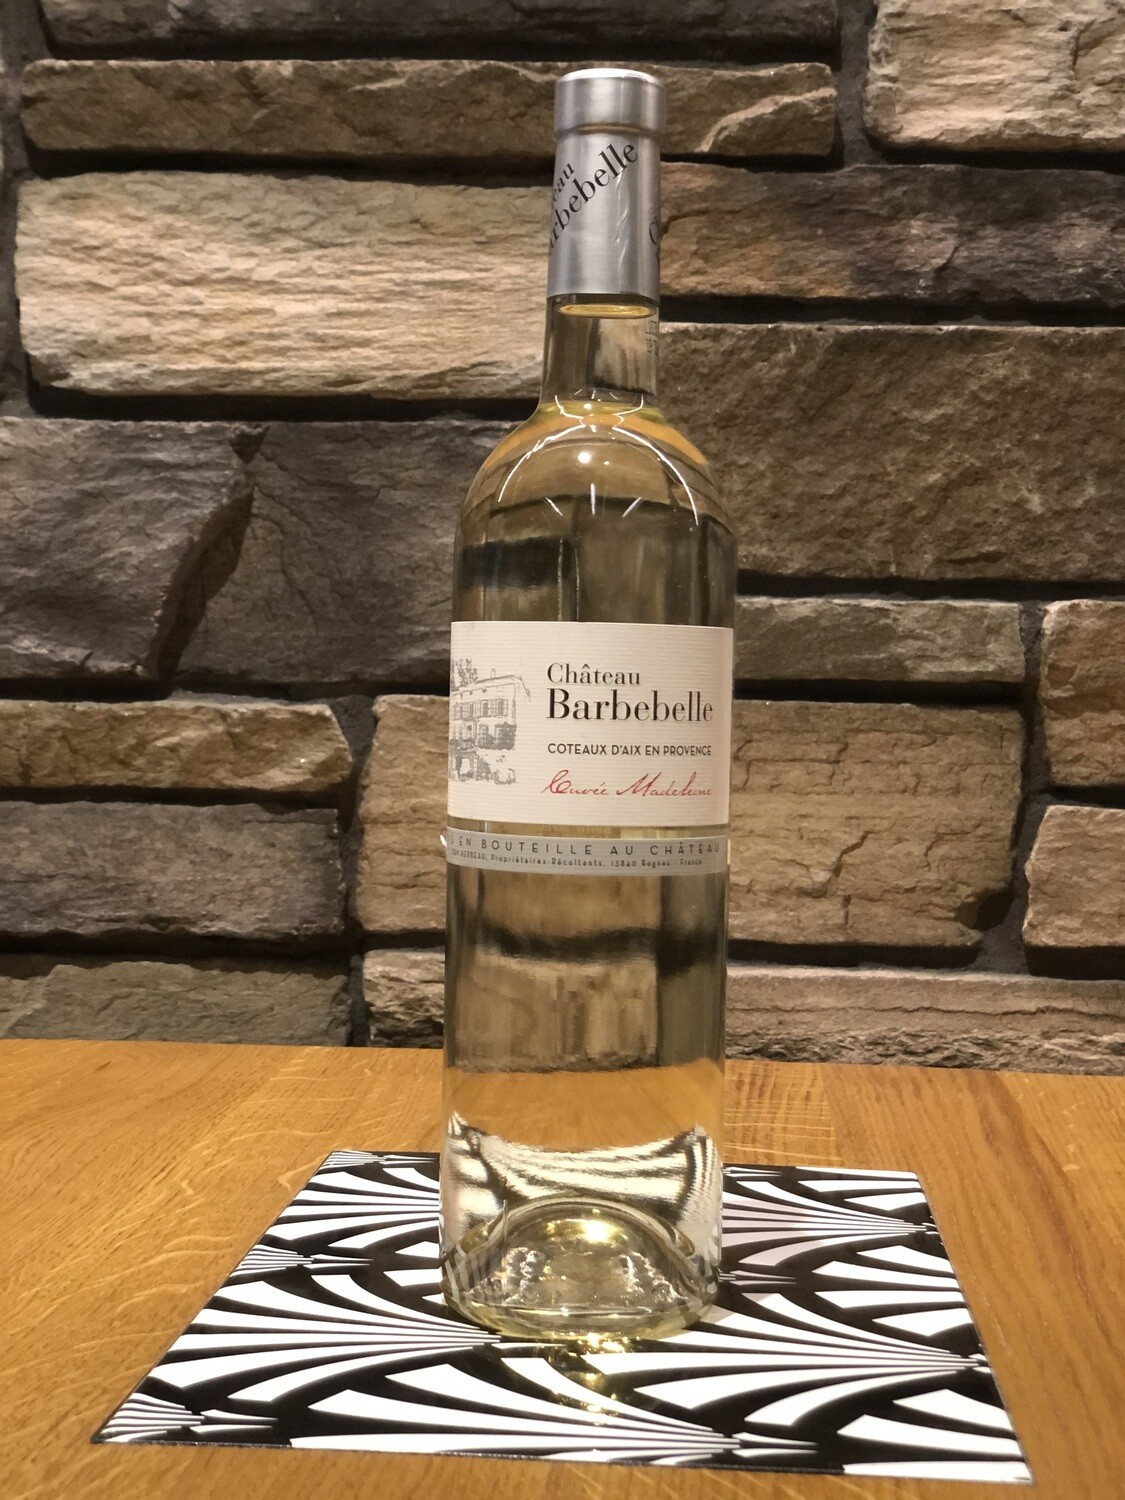 Chateaux Barbebelle Blanc